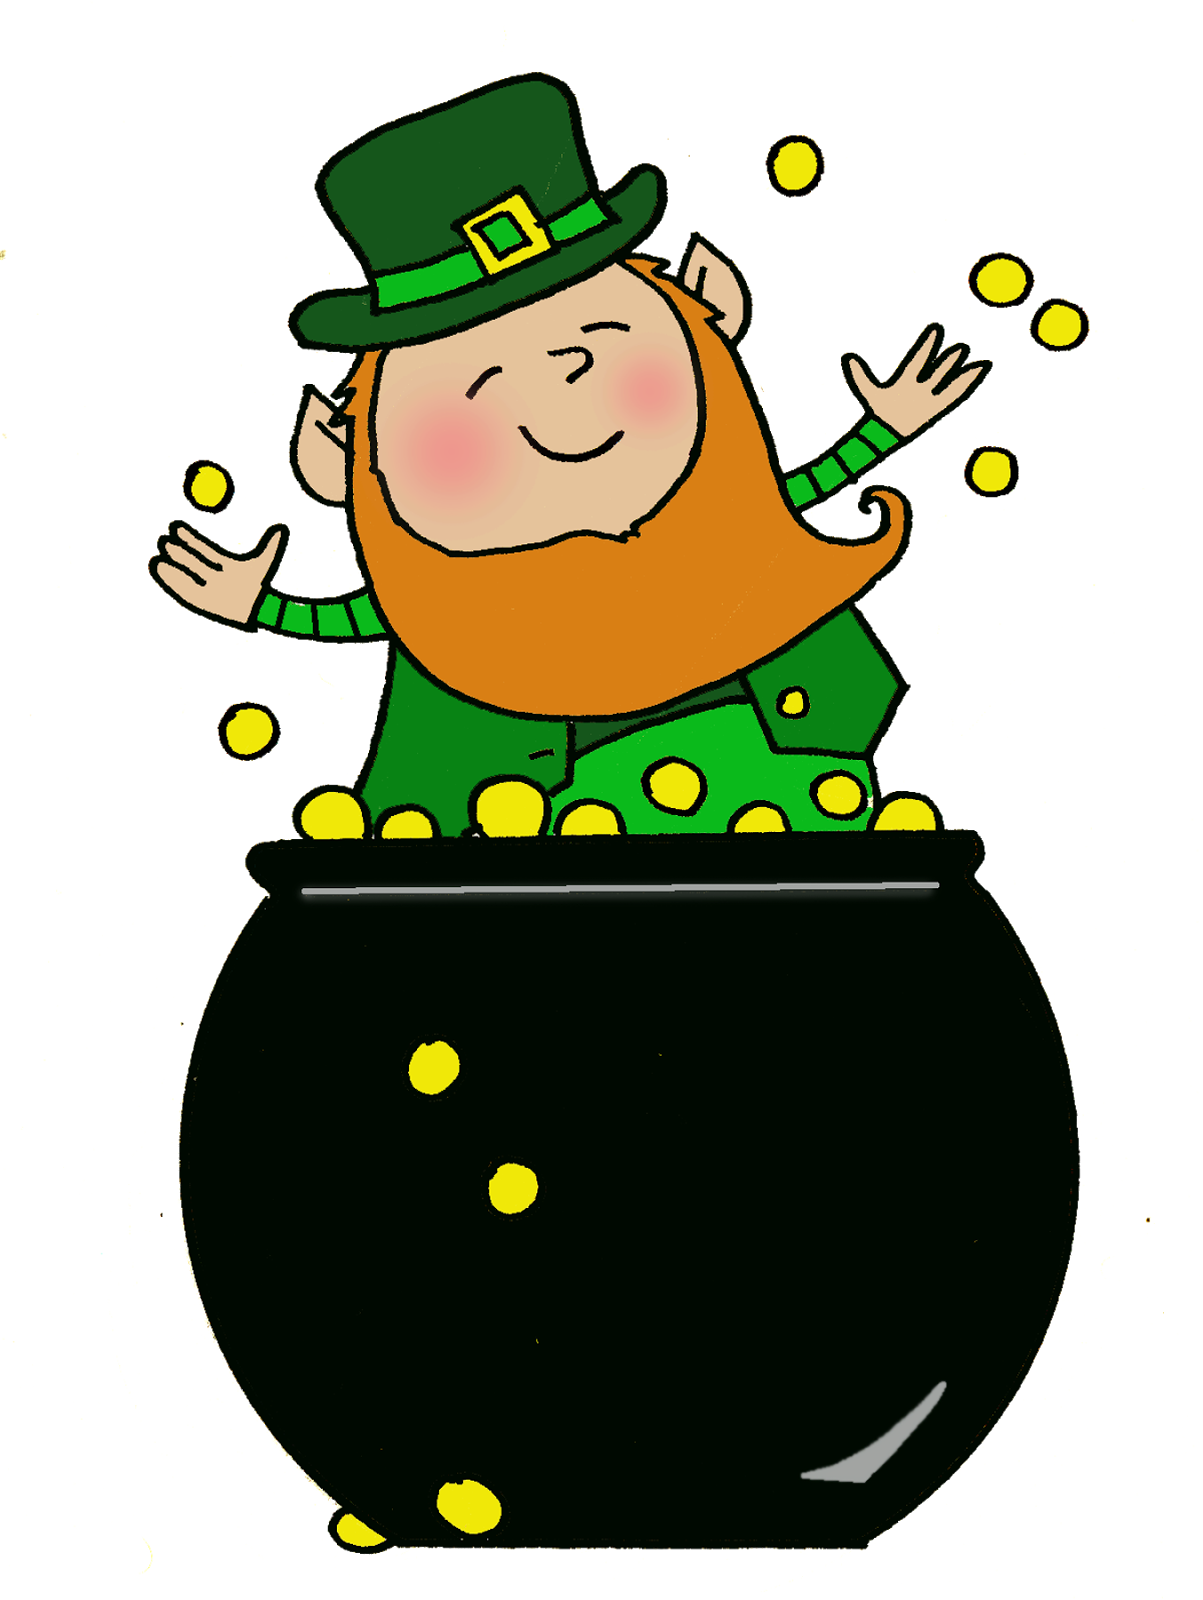 Clarinet clipart animated. Pot of gold leprechaun